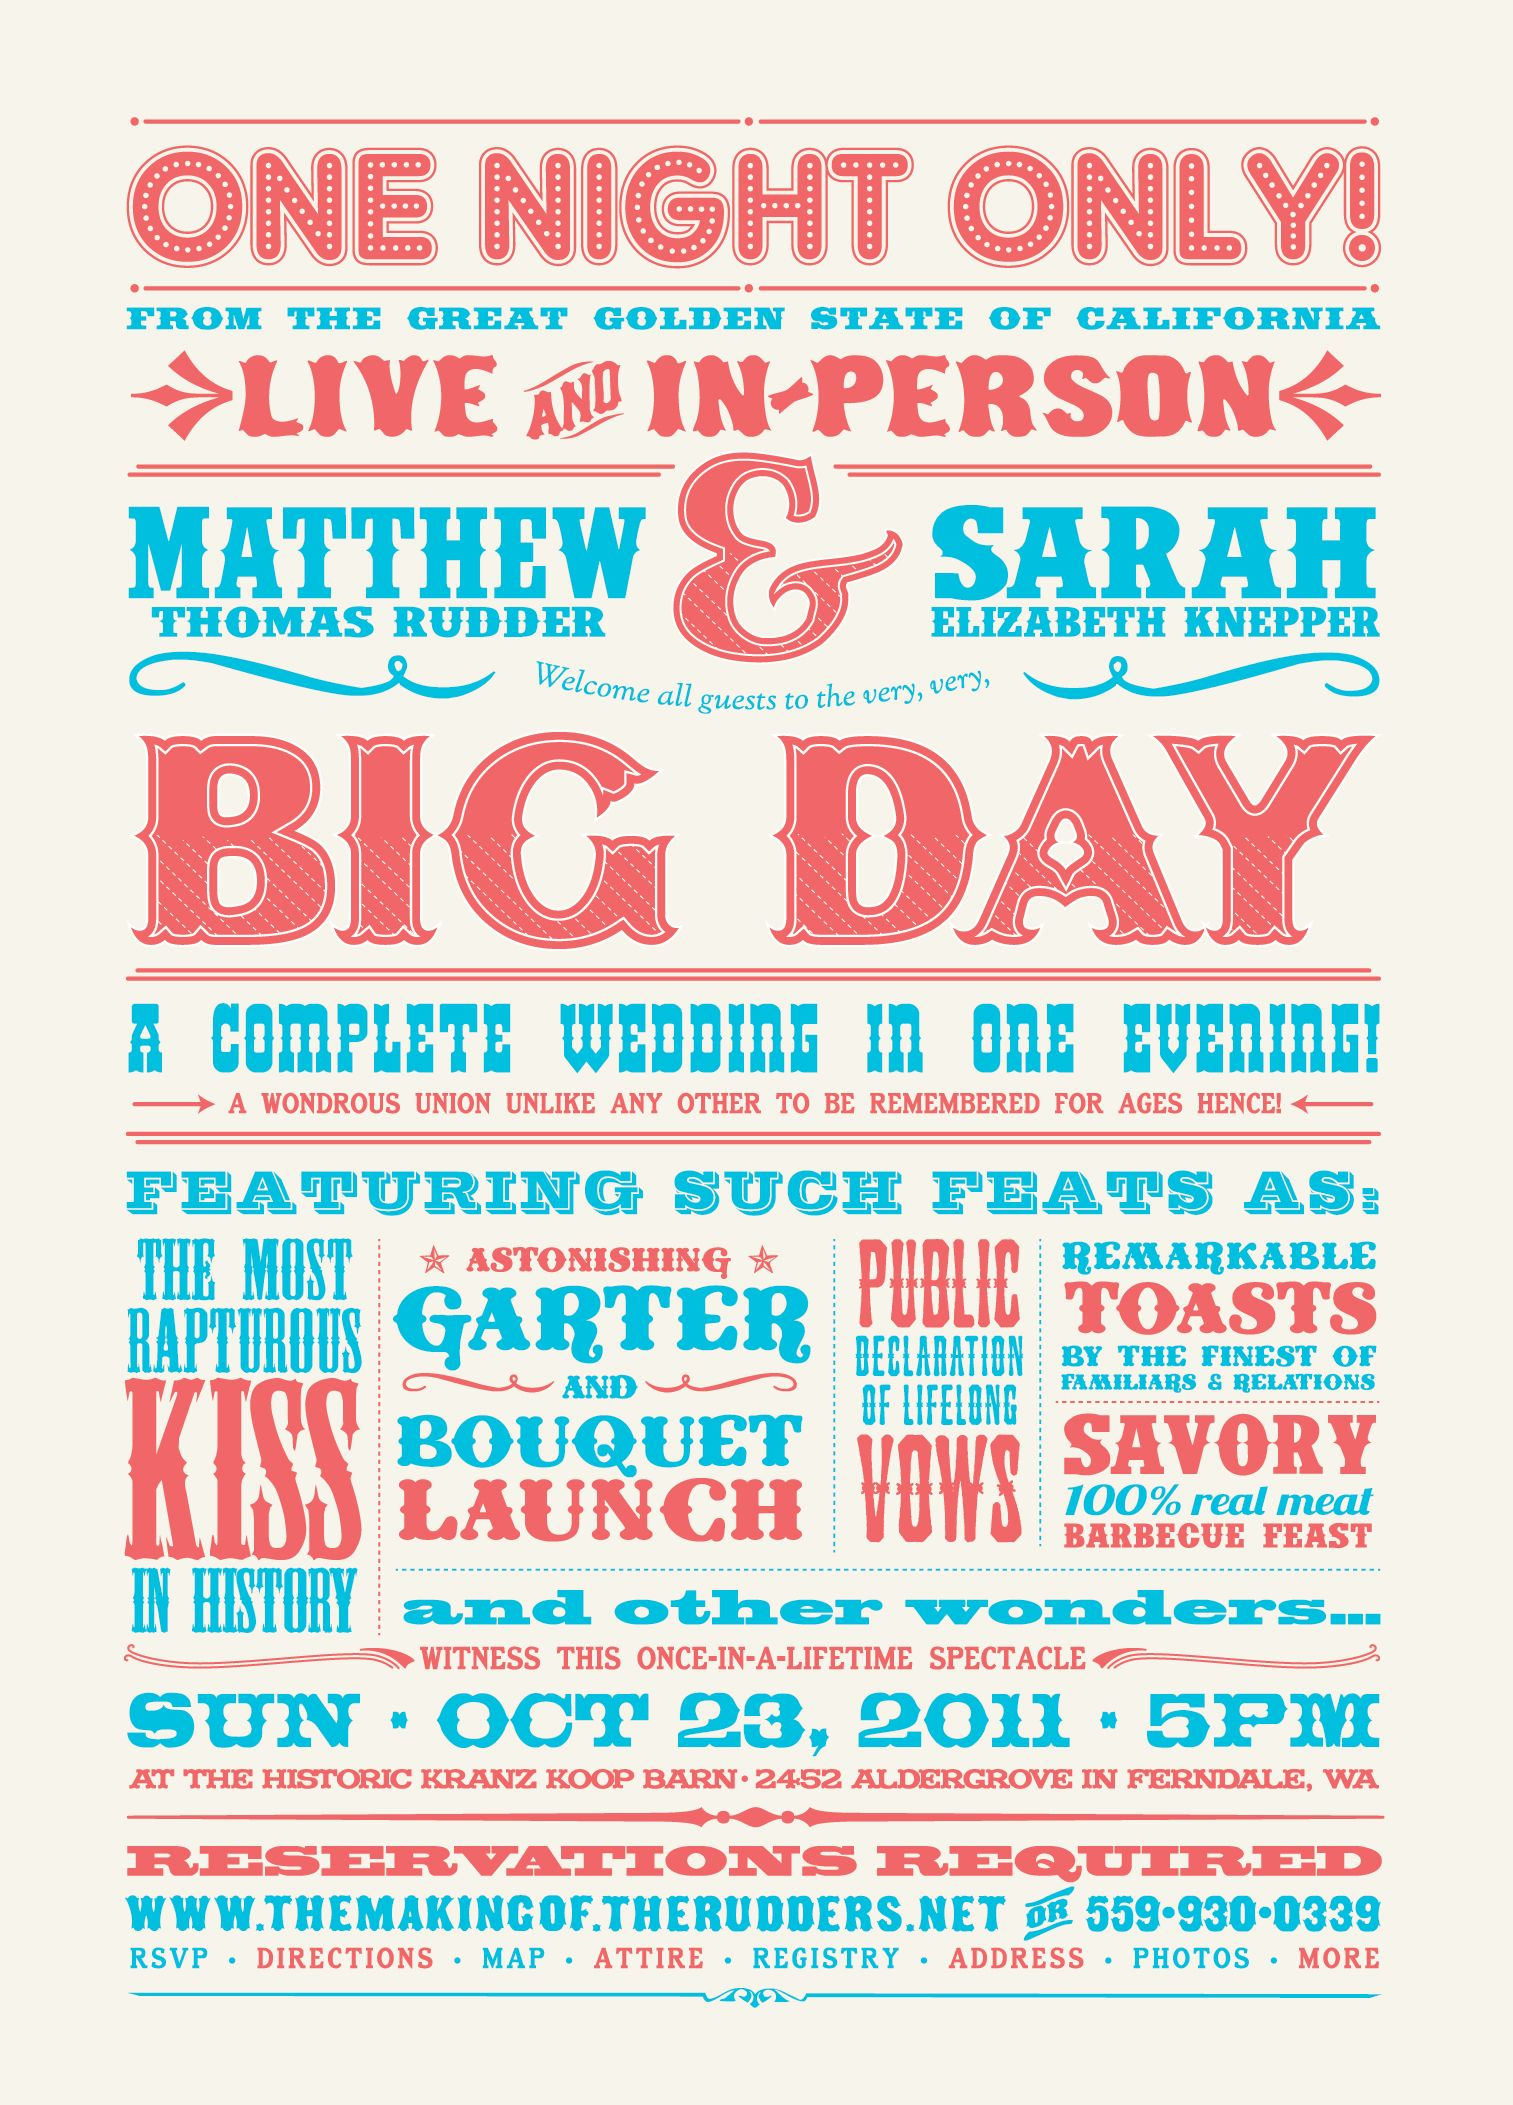 circus style typography for wedding invitations, save the date ...